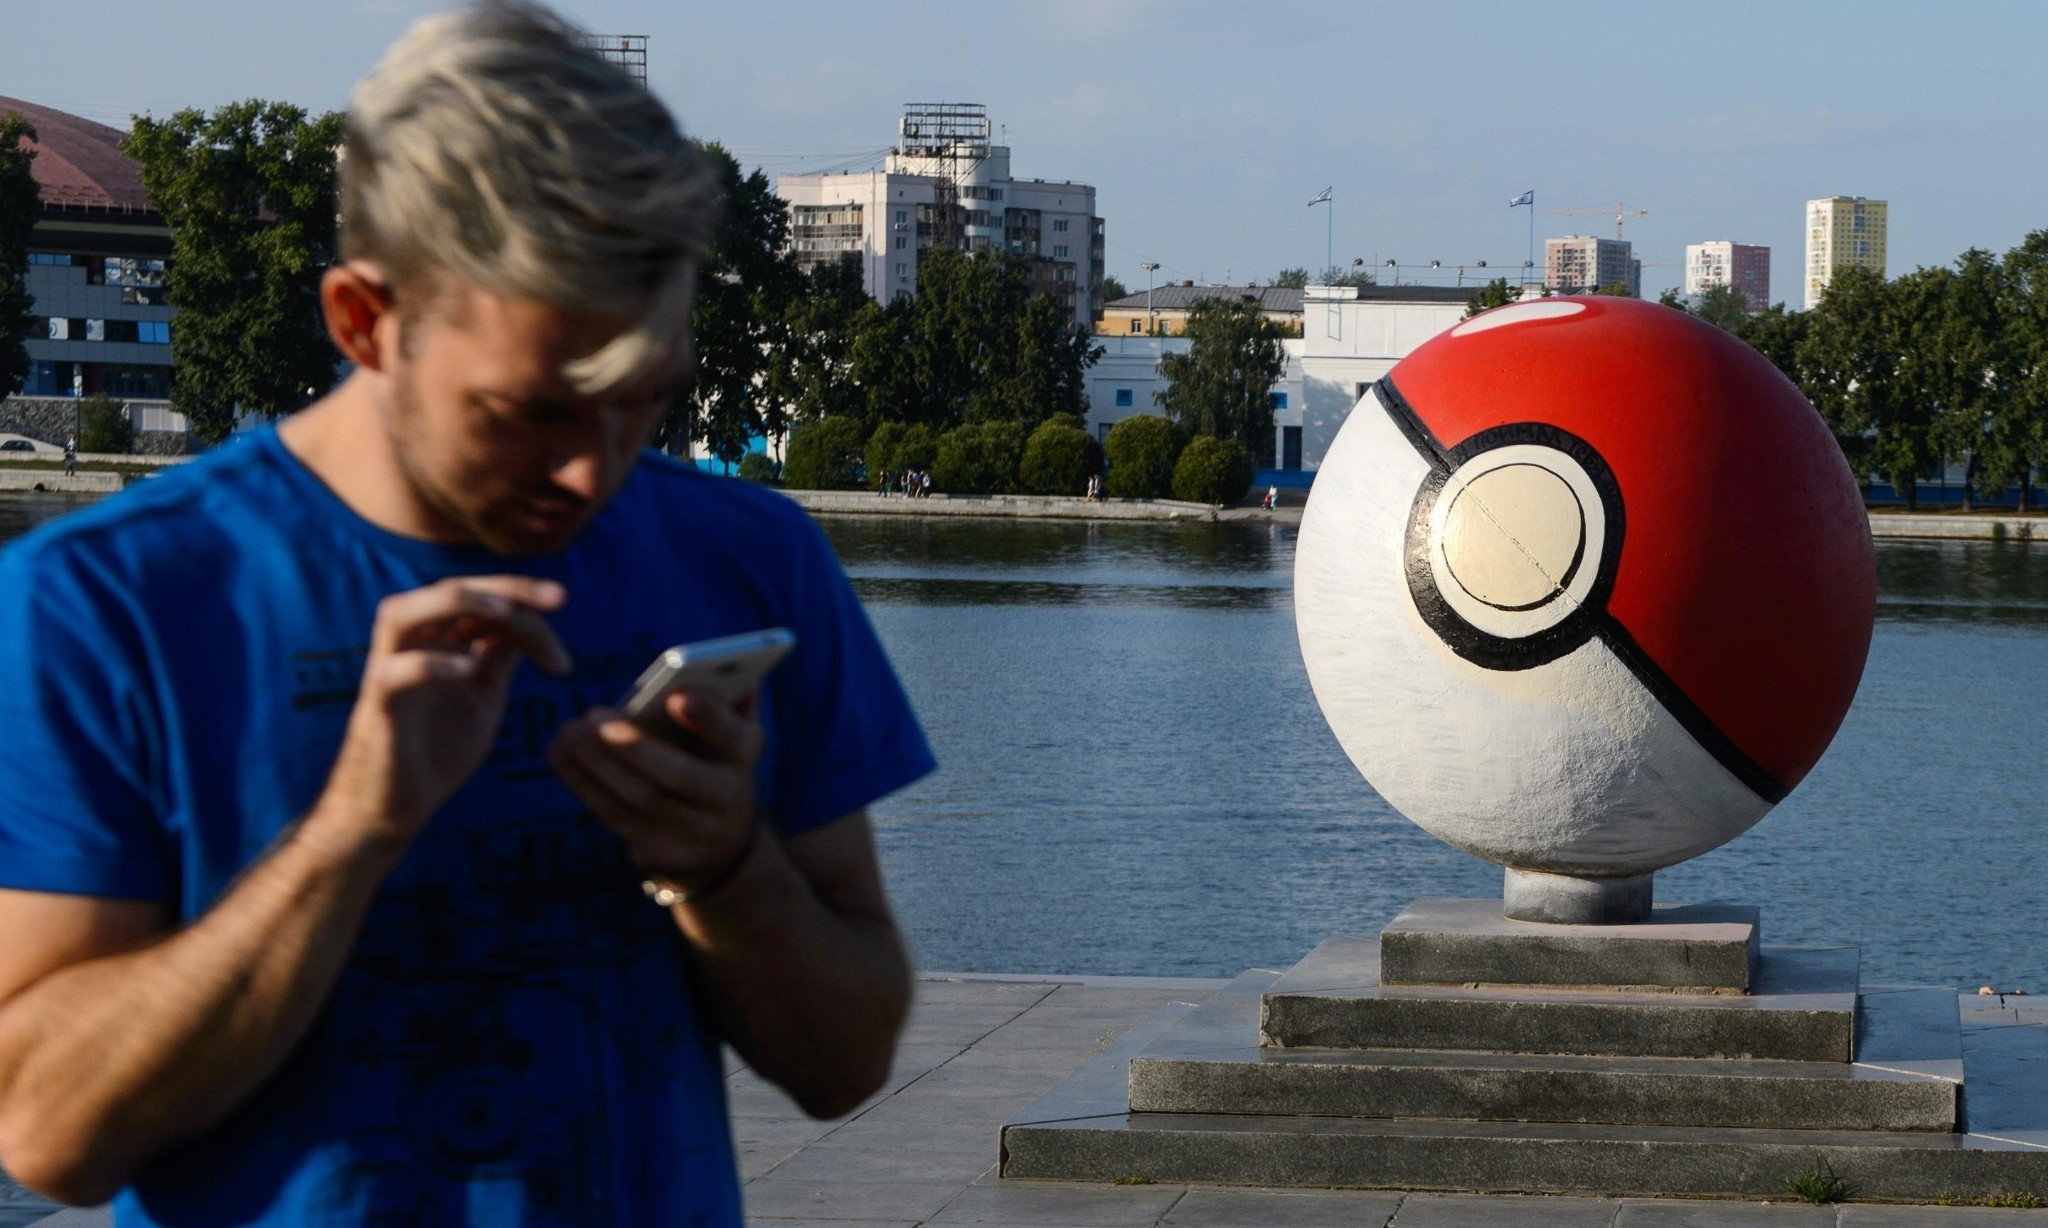 Pokémon Go players outraged after maps shut down by game update